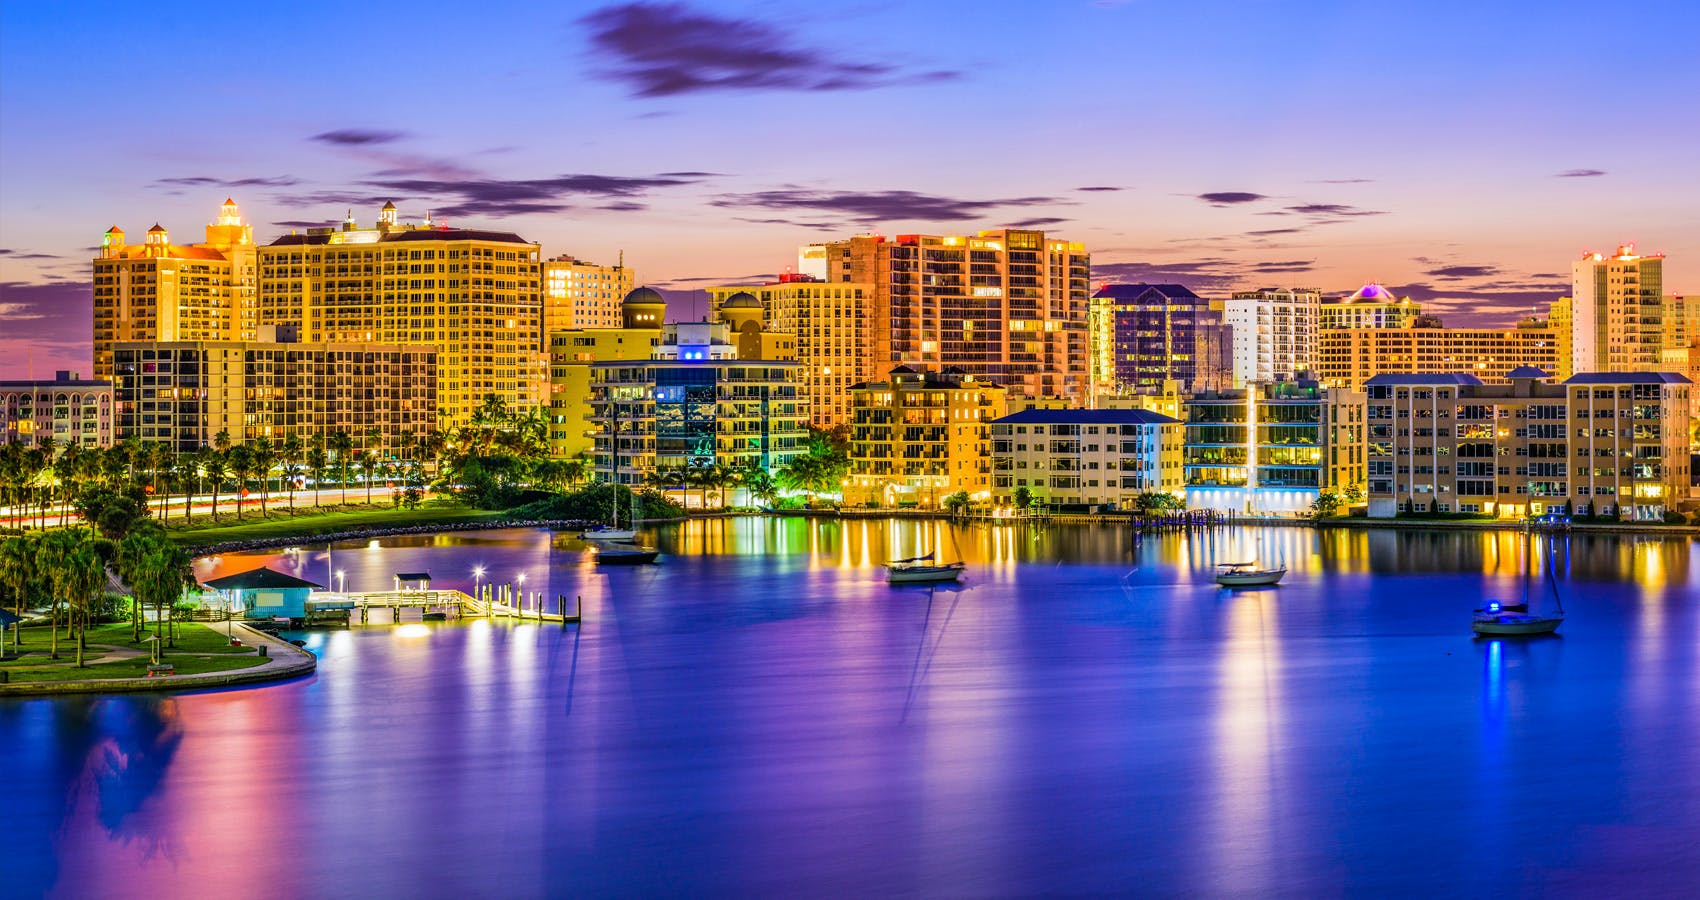 Beautiful downtown Sarasota by the waterfront